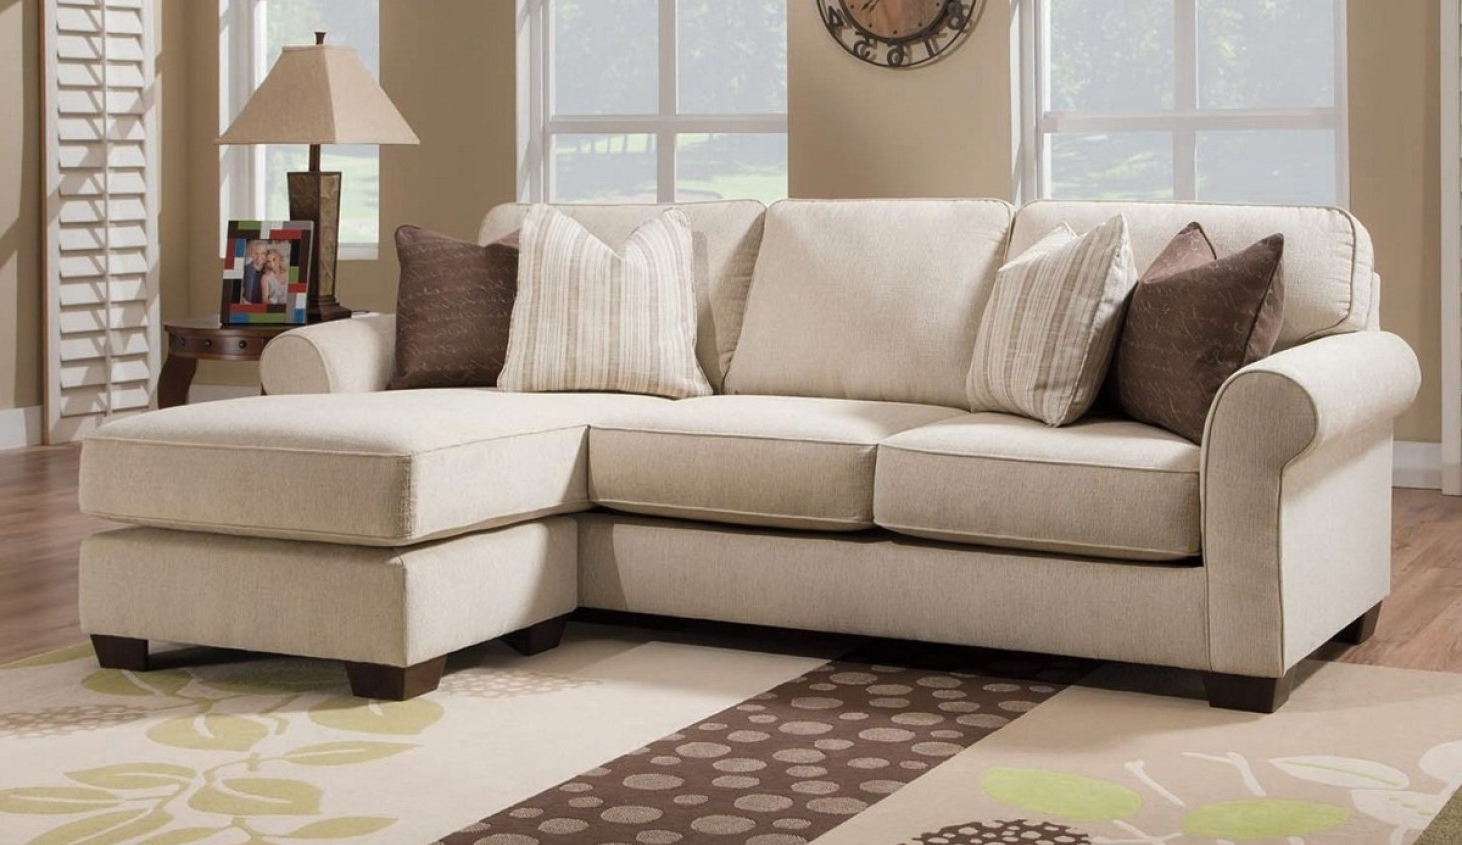 Gallery Austin Sectional Sofa – Mediasupload Within Best And Newest Austin Sectional Sofas (Gallery 12 of 20)